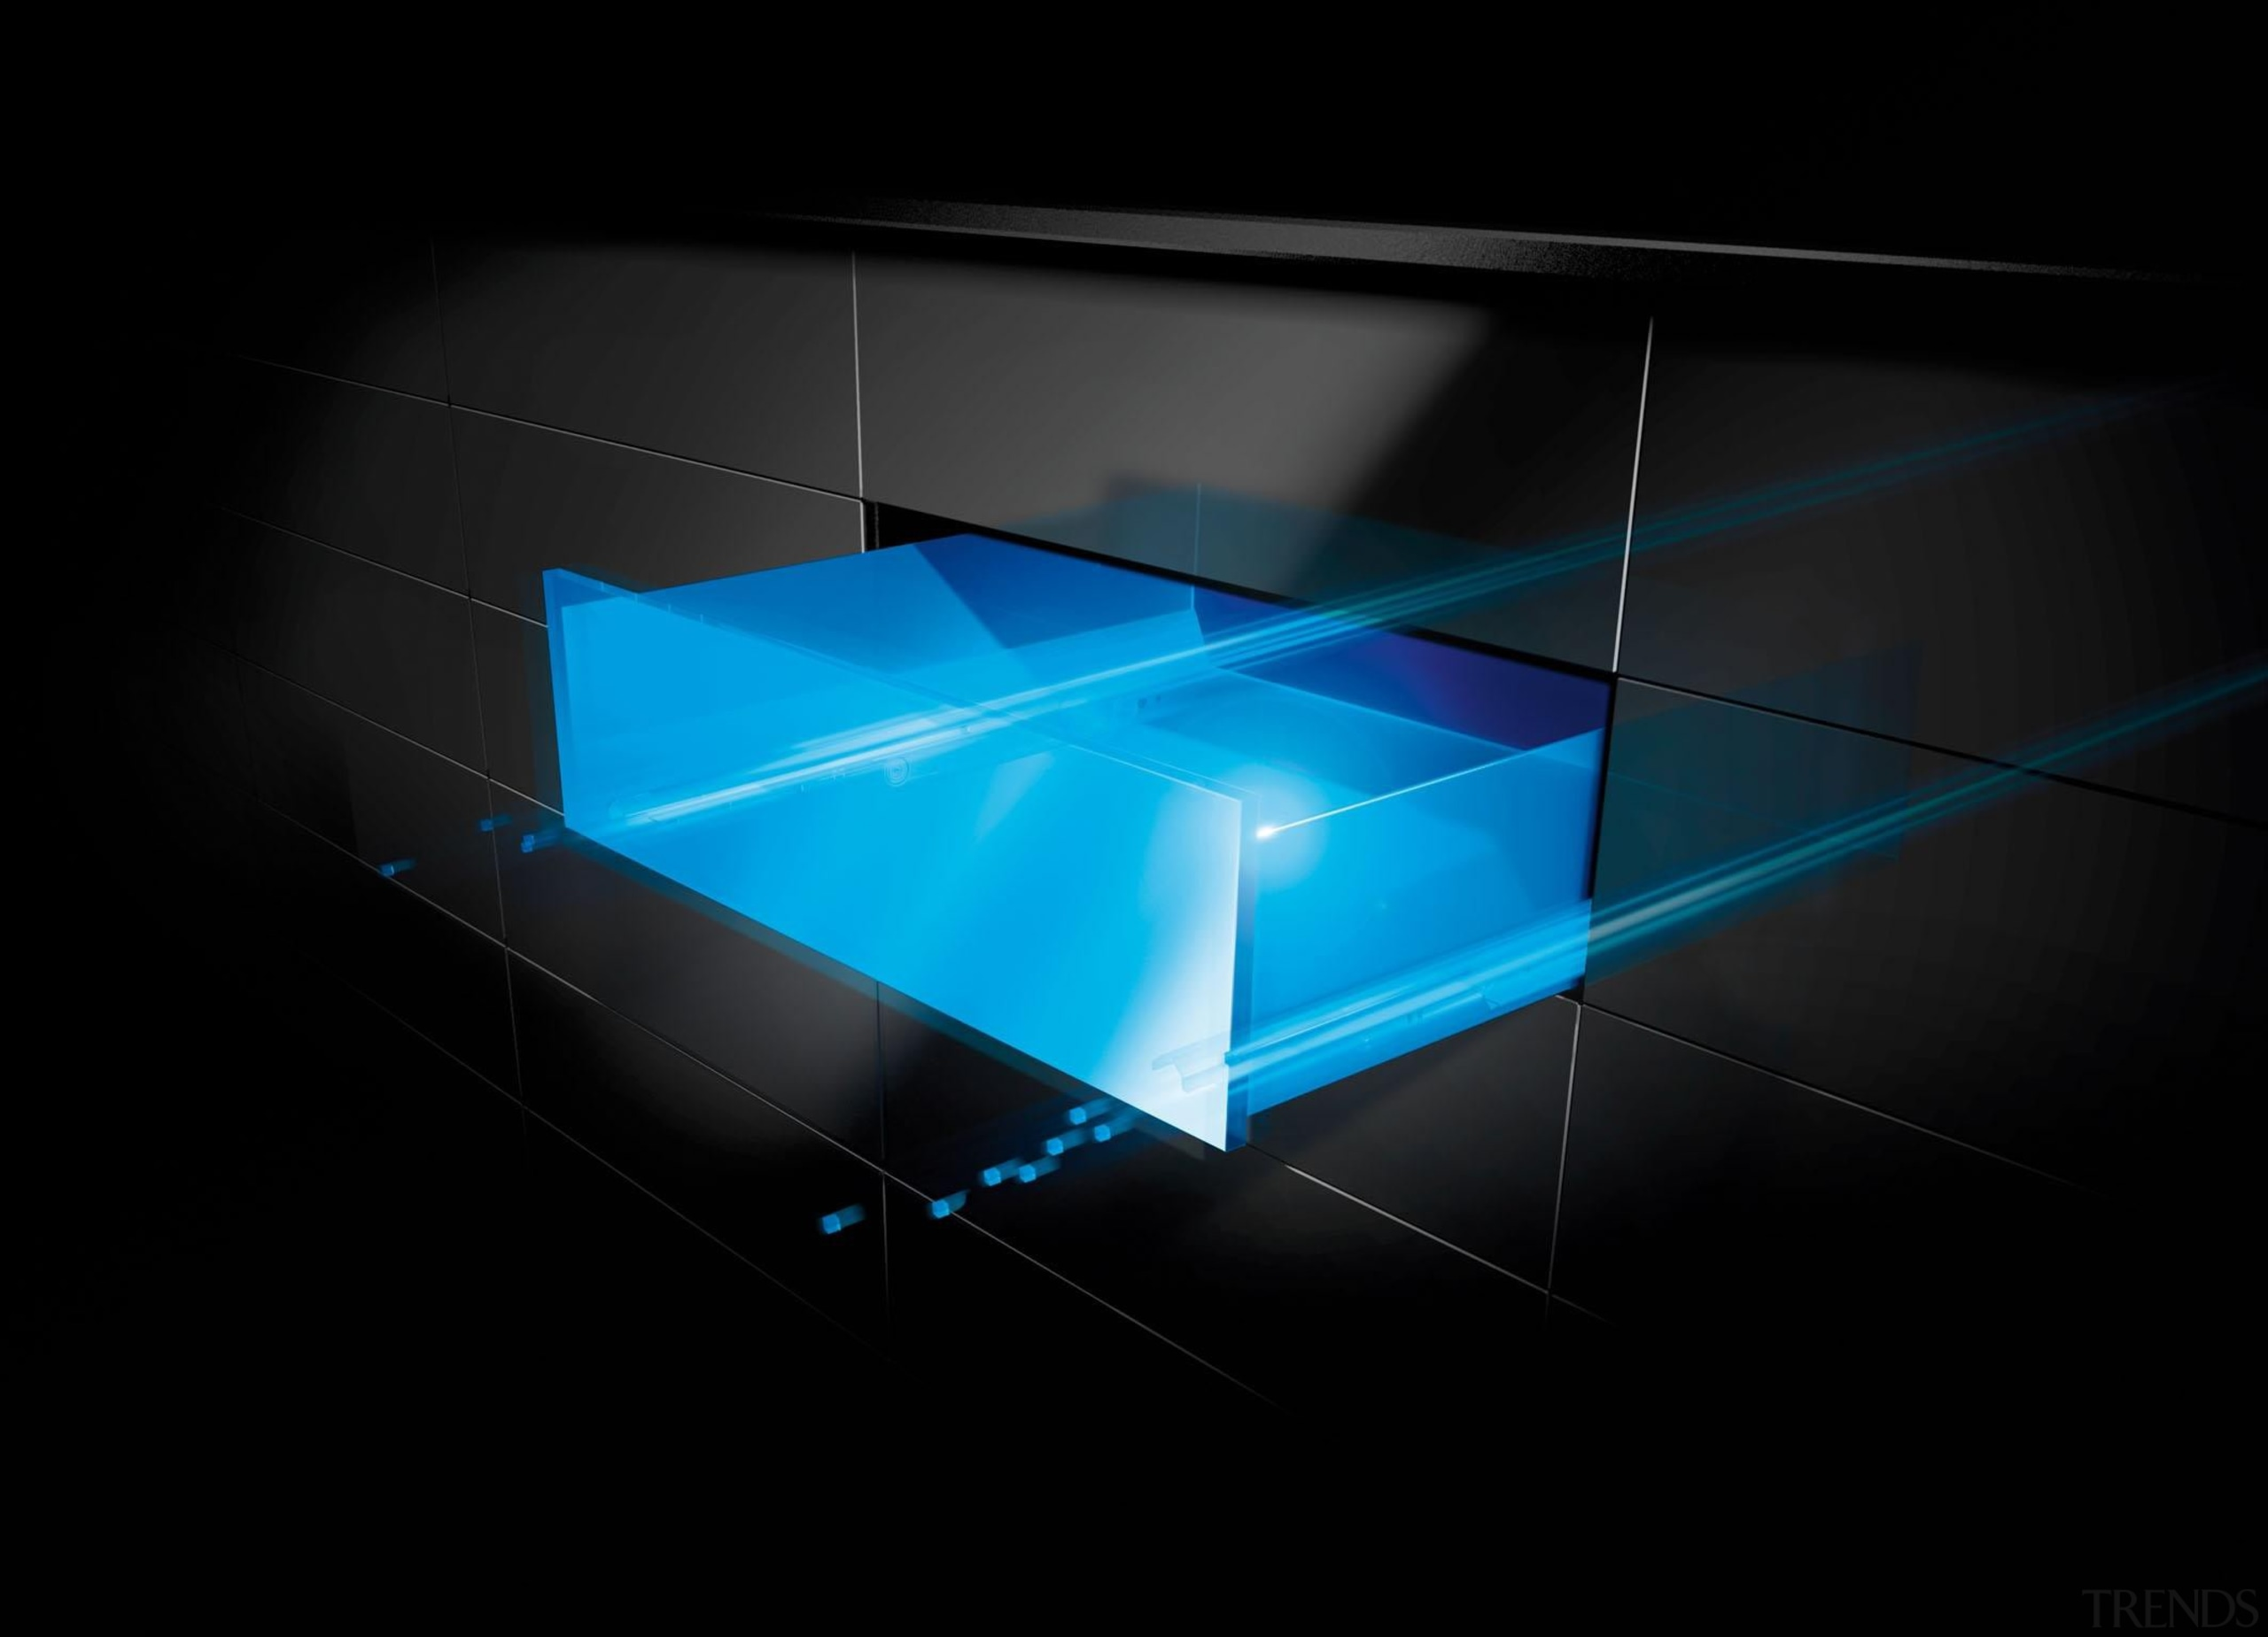 The luxurious action of the Actro runner is angle, blue, computer wallpaper, light, lighting, line, product design, technology, black